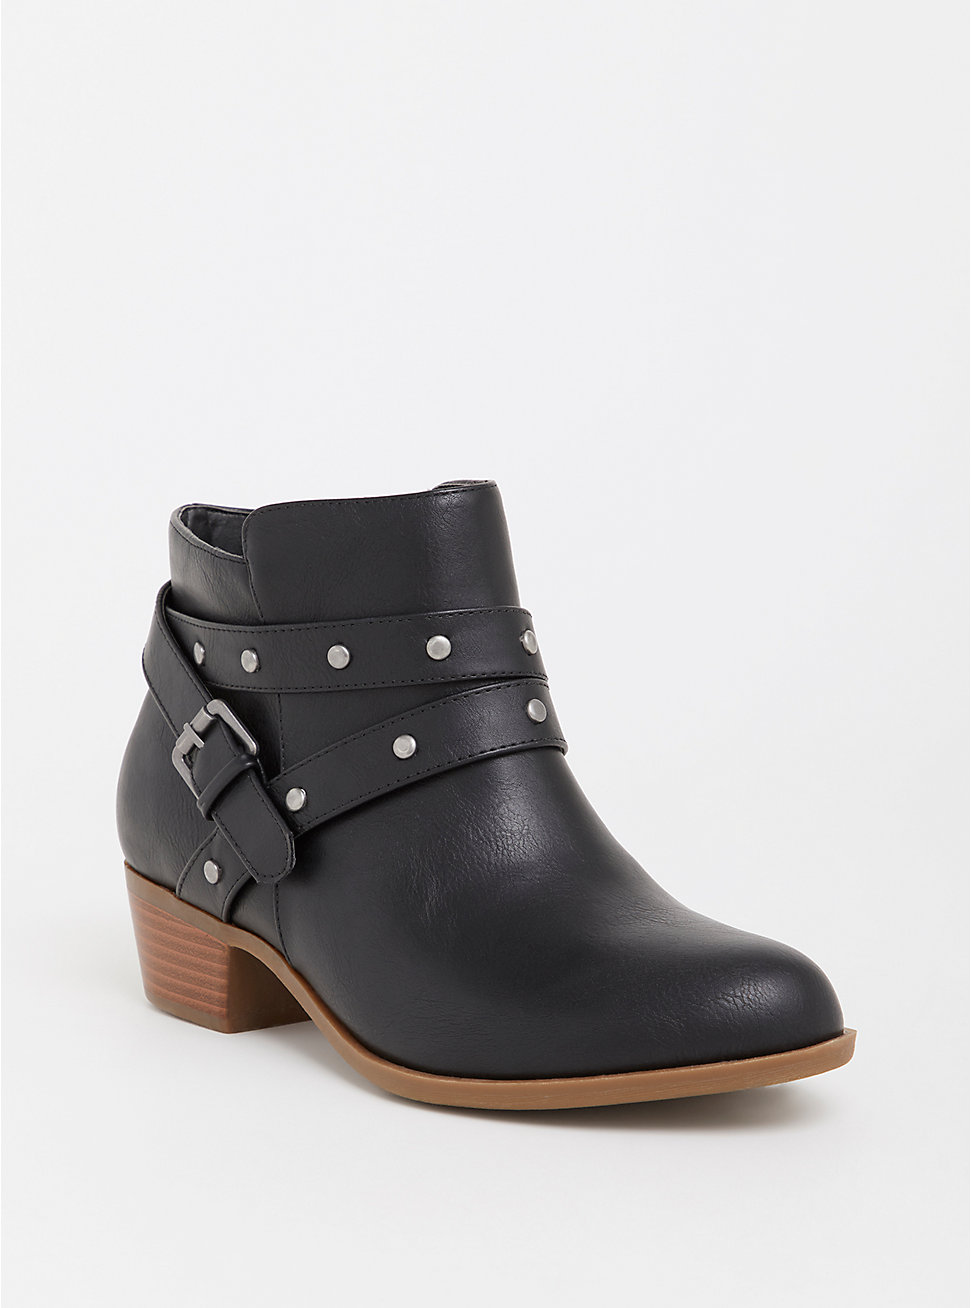 Black Studded Faux Leather Bootie - Torrid ($64.90)